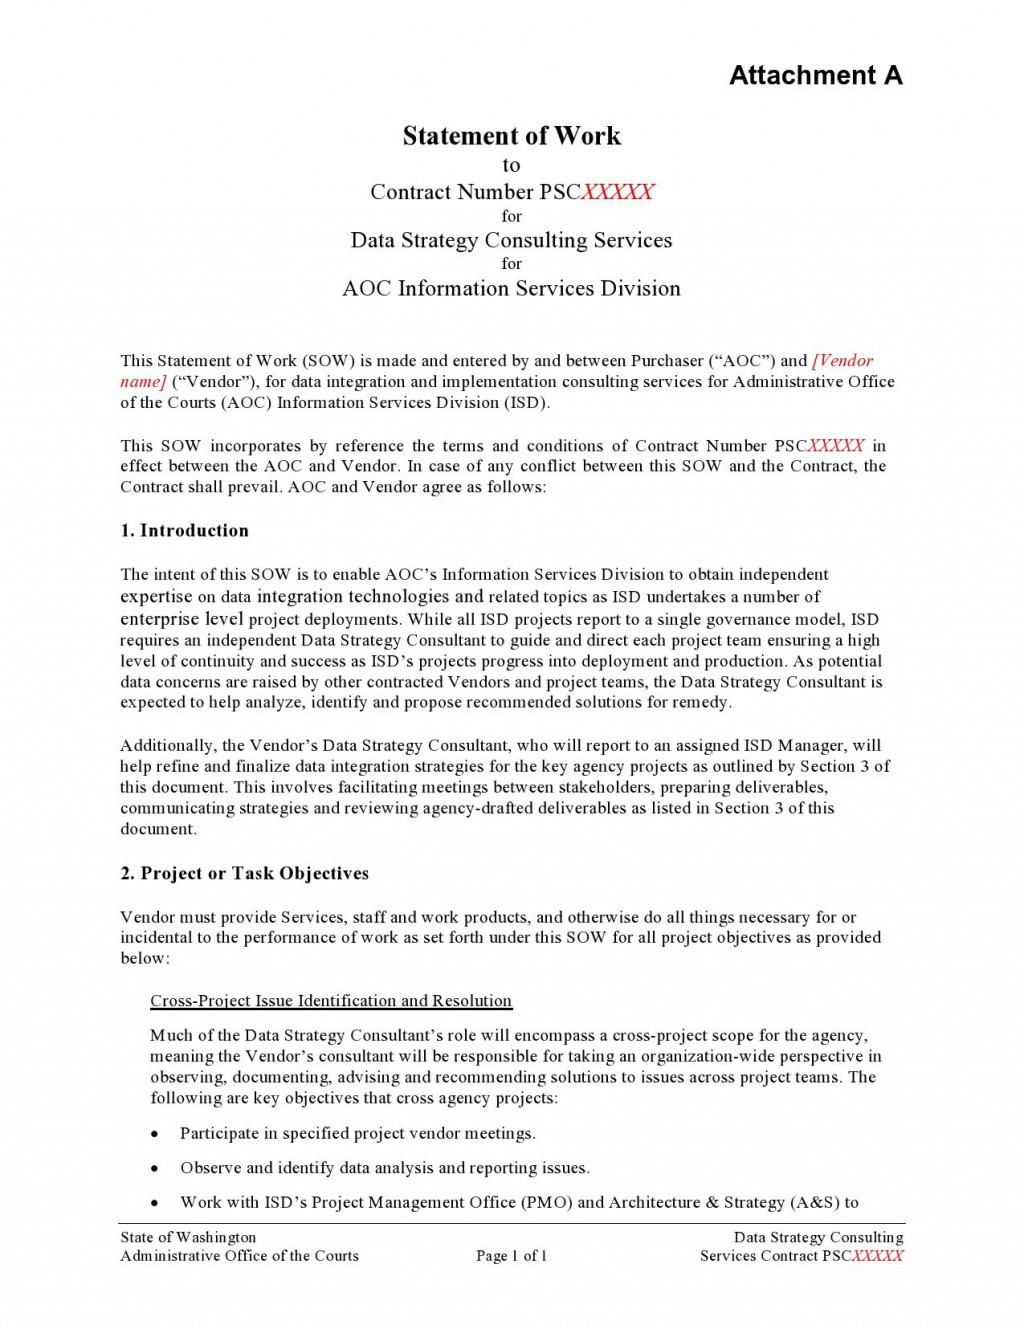 008 Best Statement Of Work Example Software Consulting Highest Quality Large